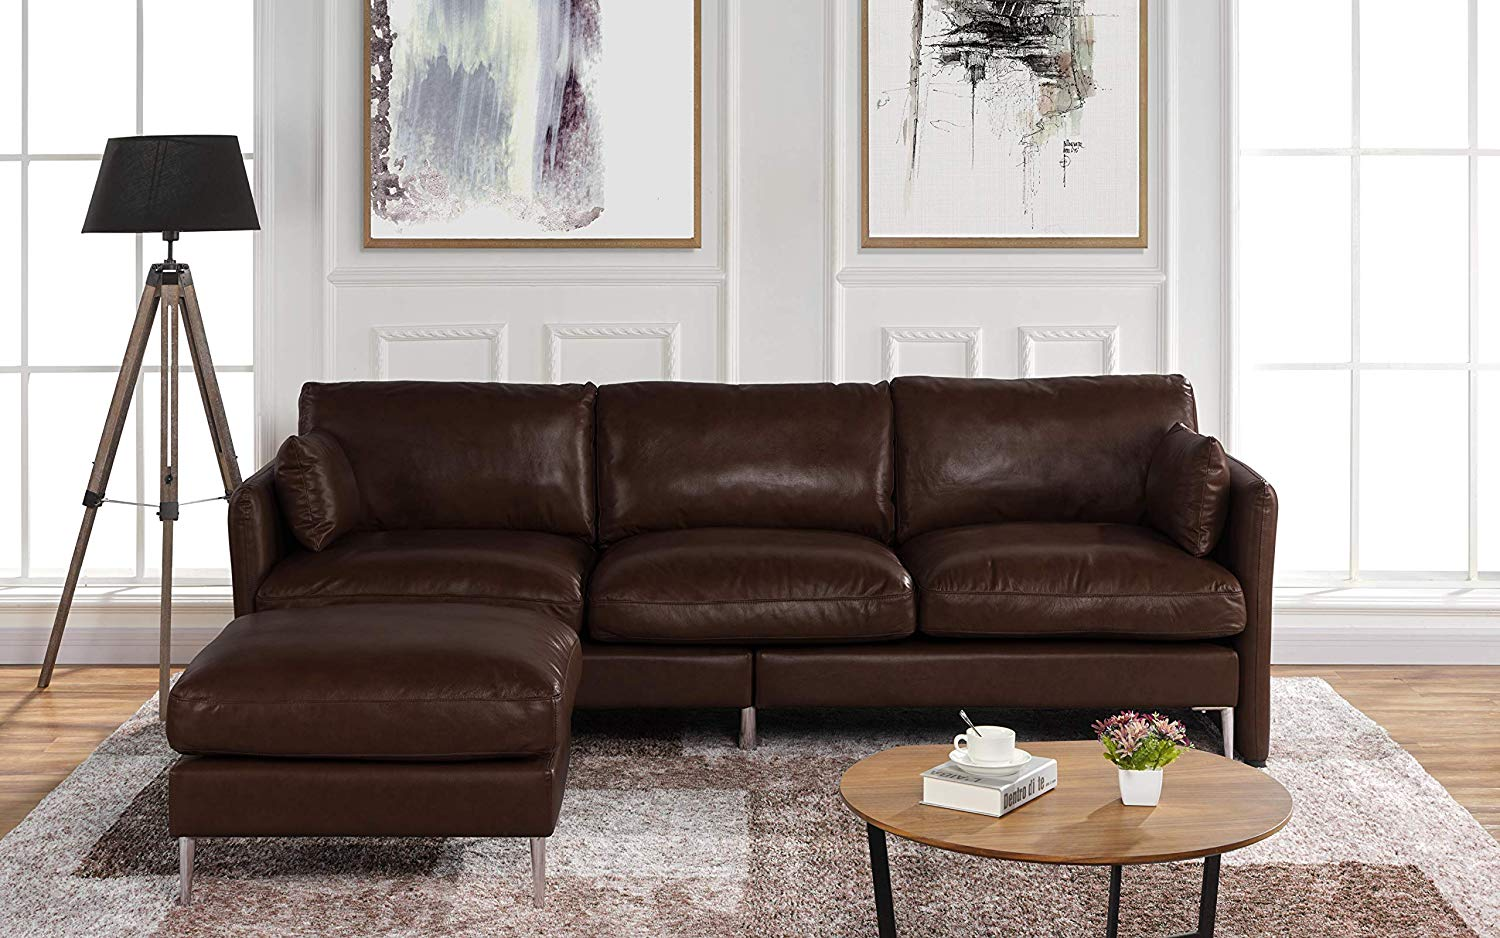 Modern Leather Sectional Sofa L Shape Couch 93 7 W Ek Chic Home